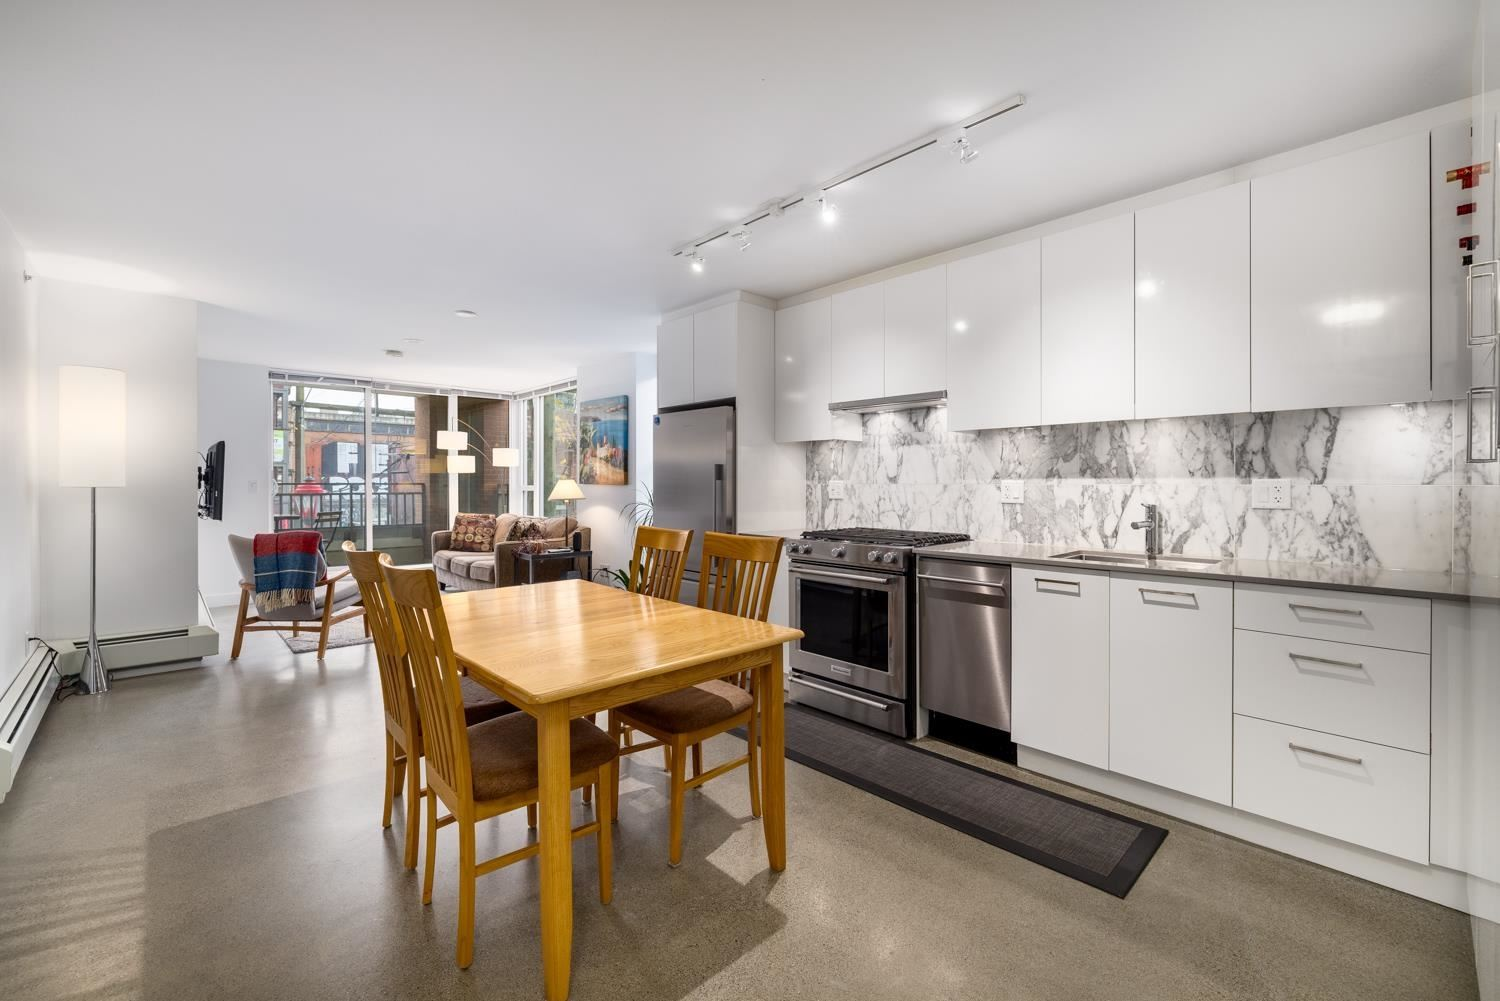 Photo for 207 231 E PENDER STREET, Vancouver, BC V6A 0G3 (MLS # R2625636)